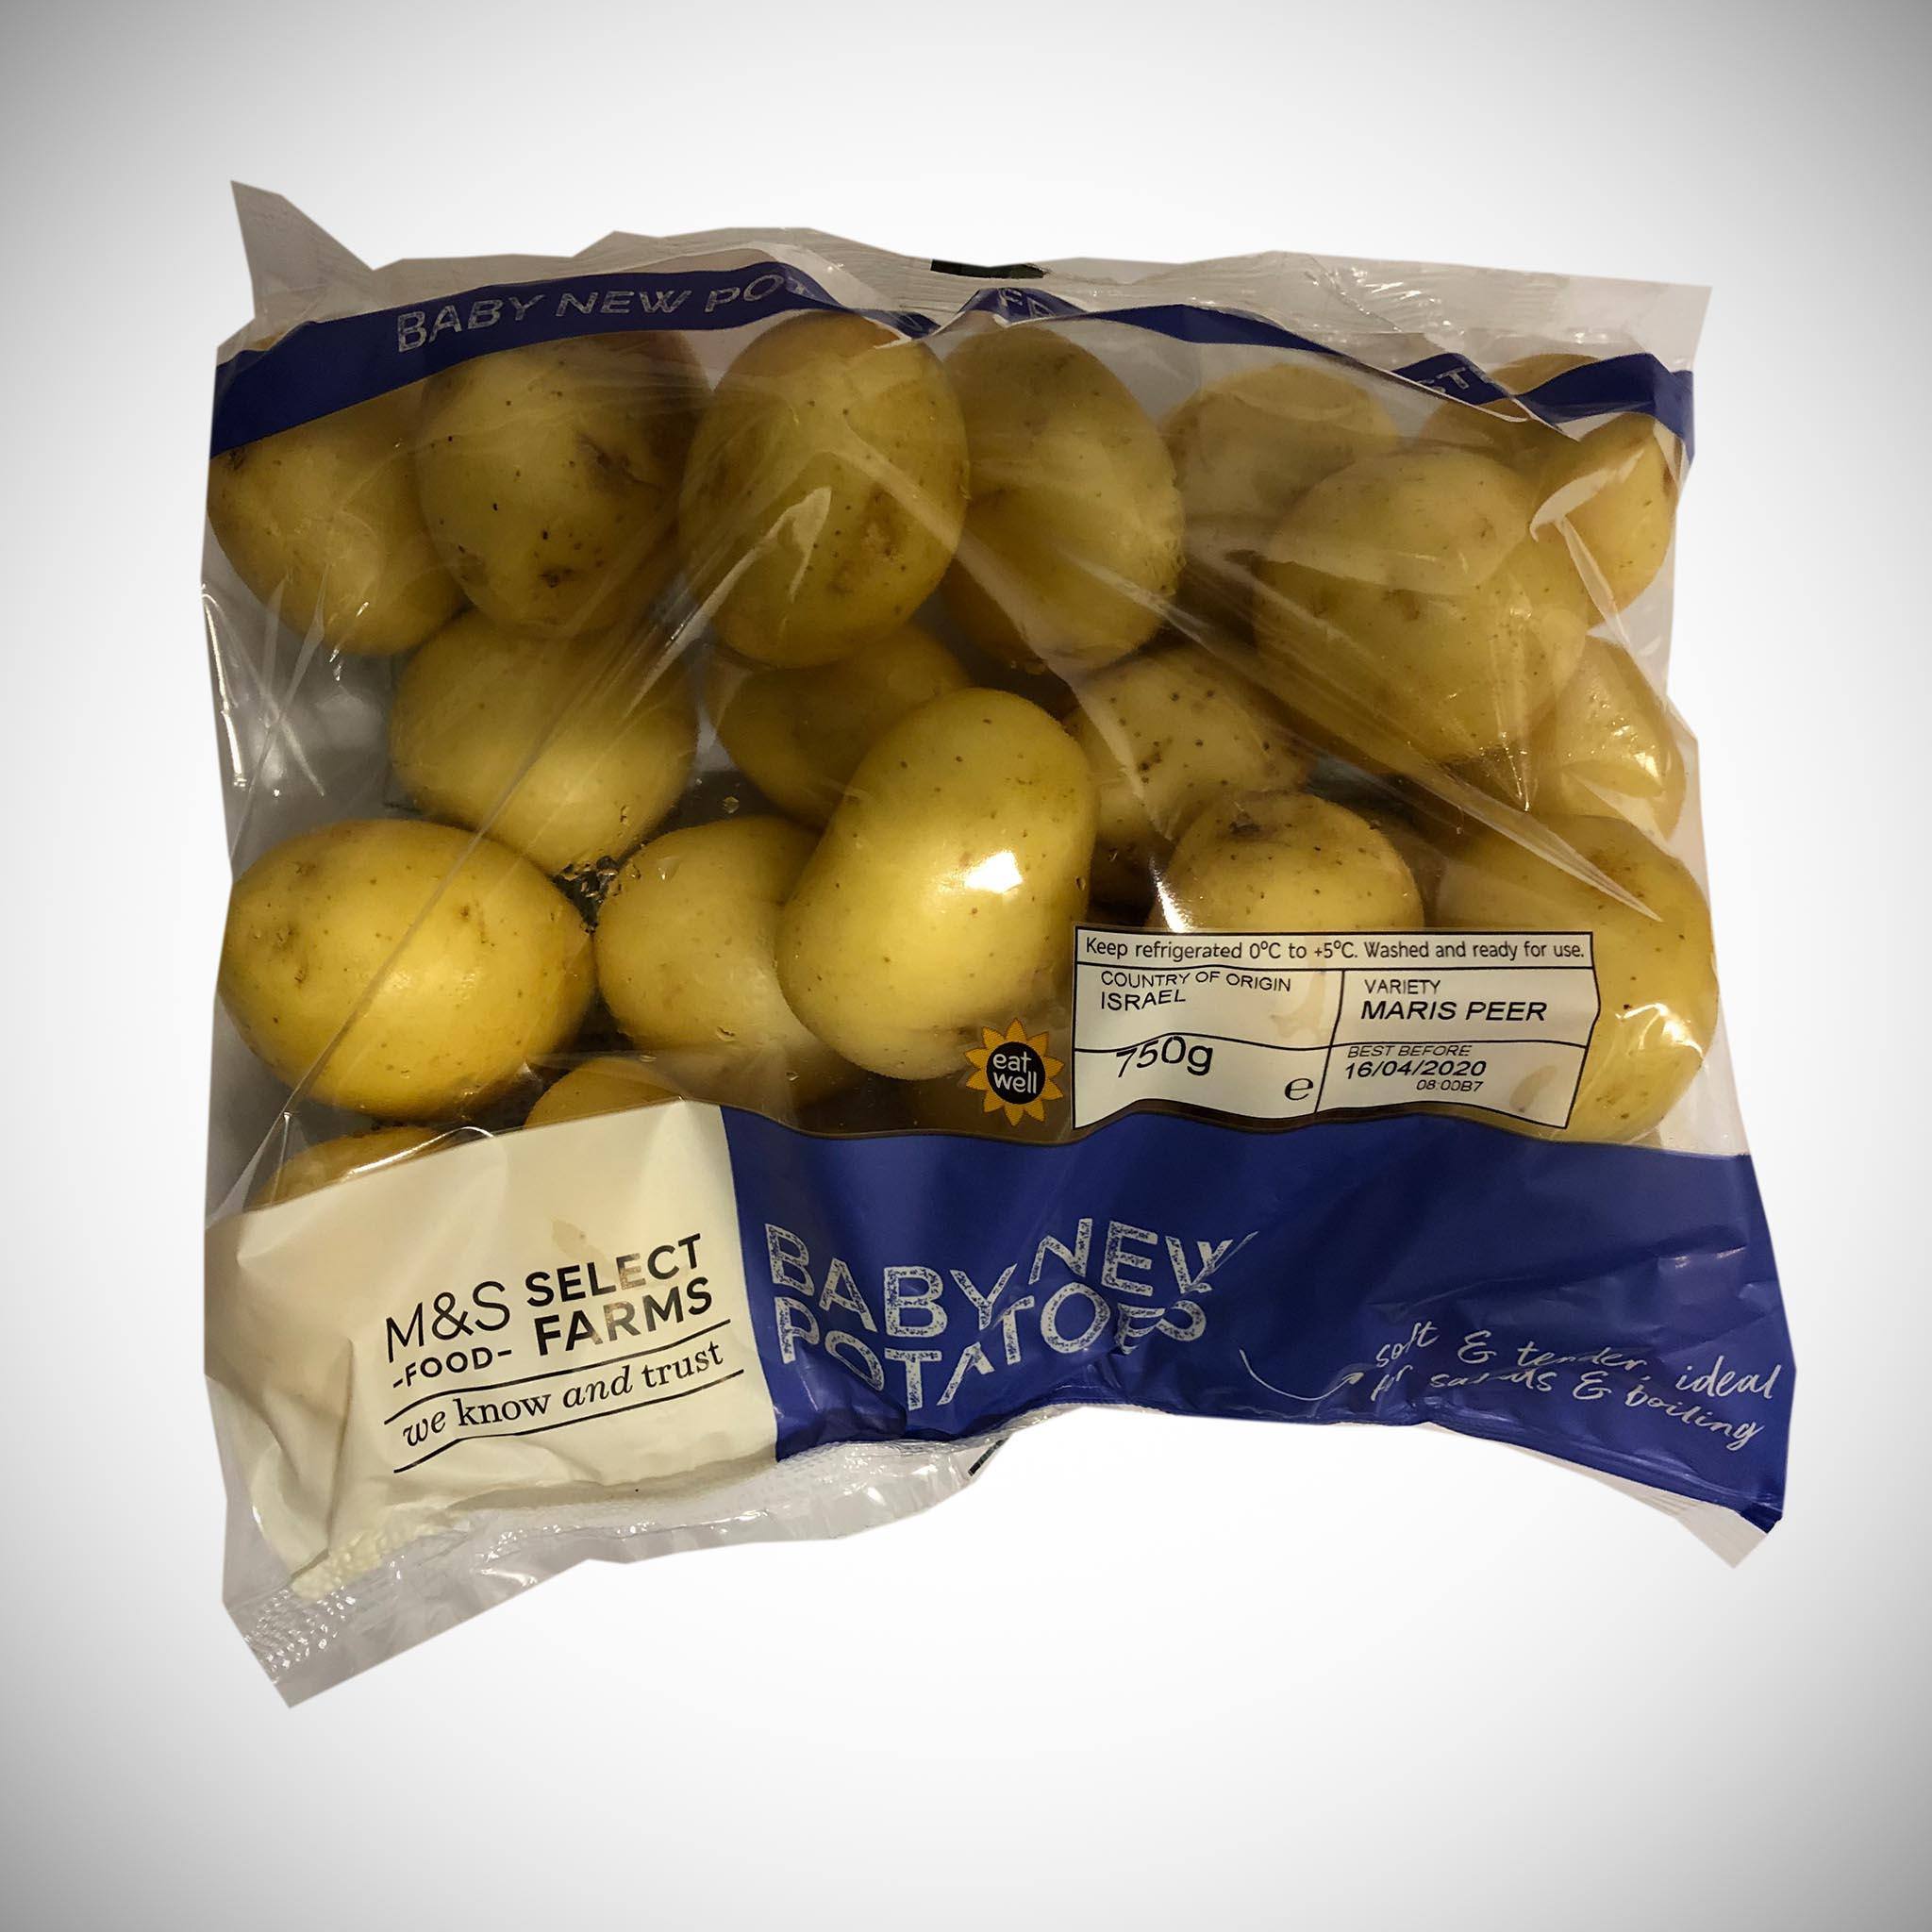 Baby New Potatoes 750g